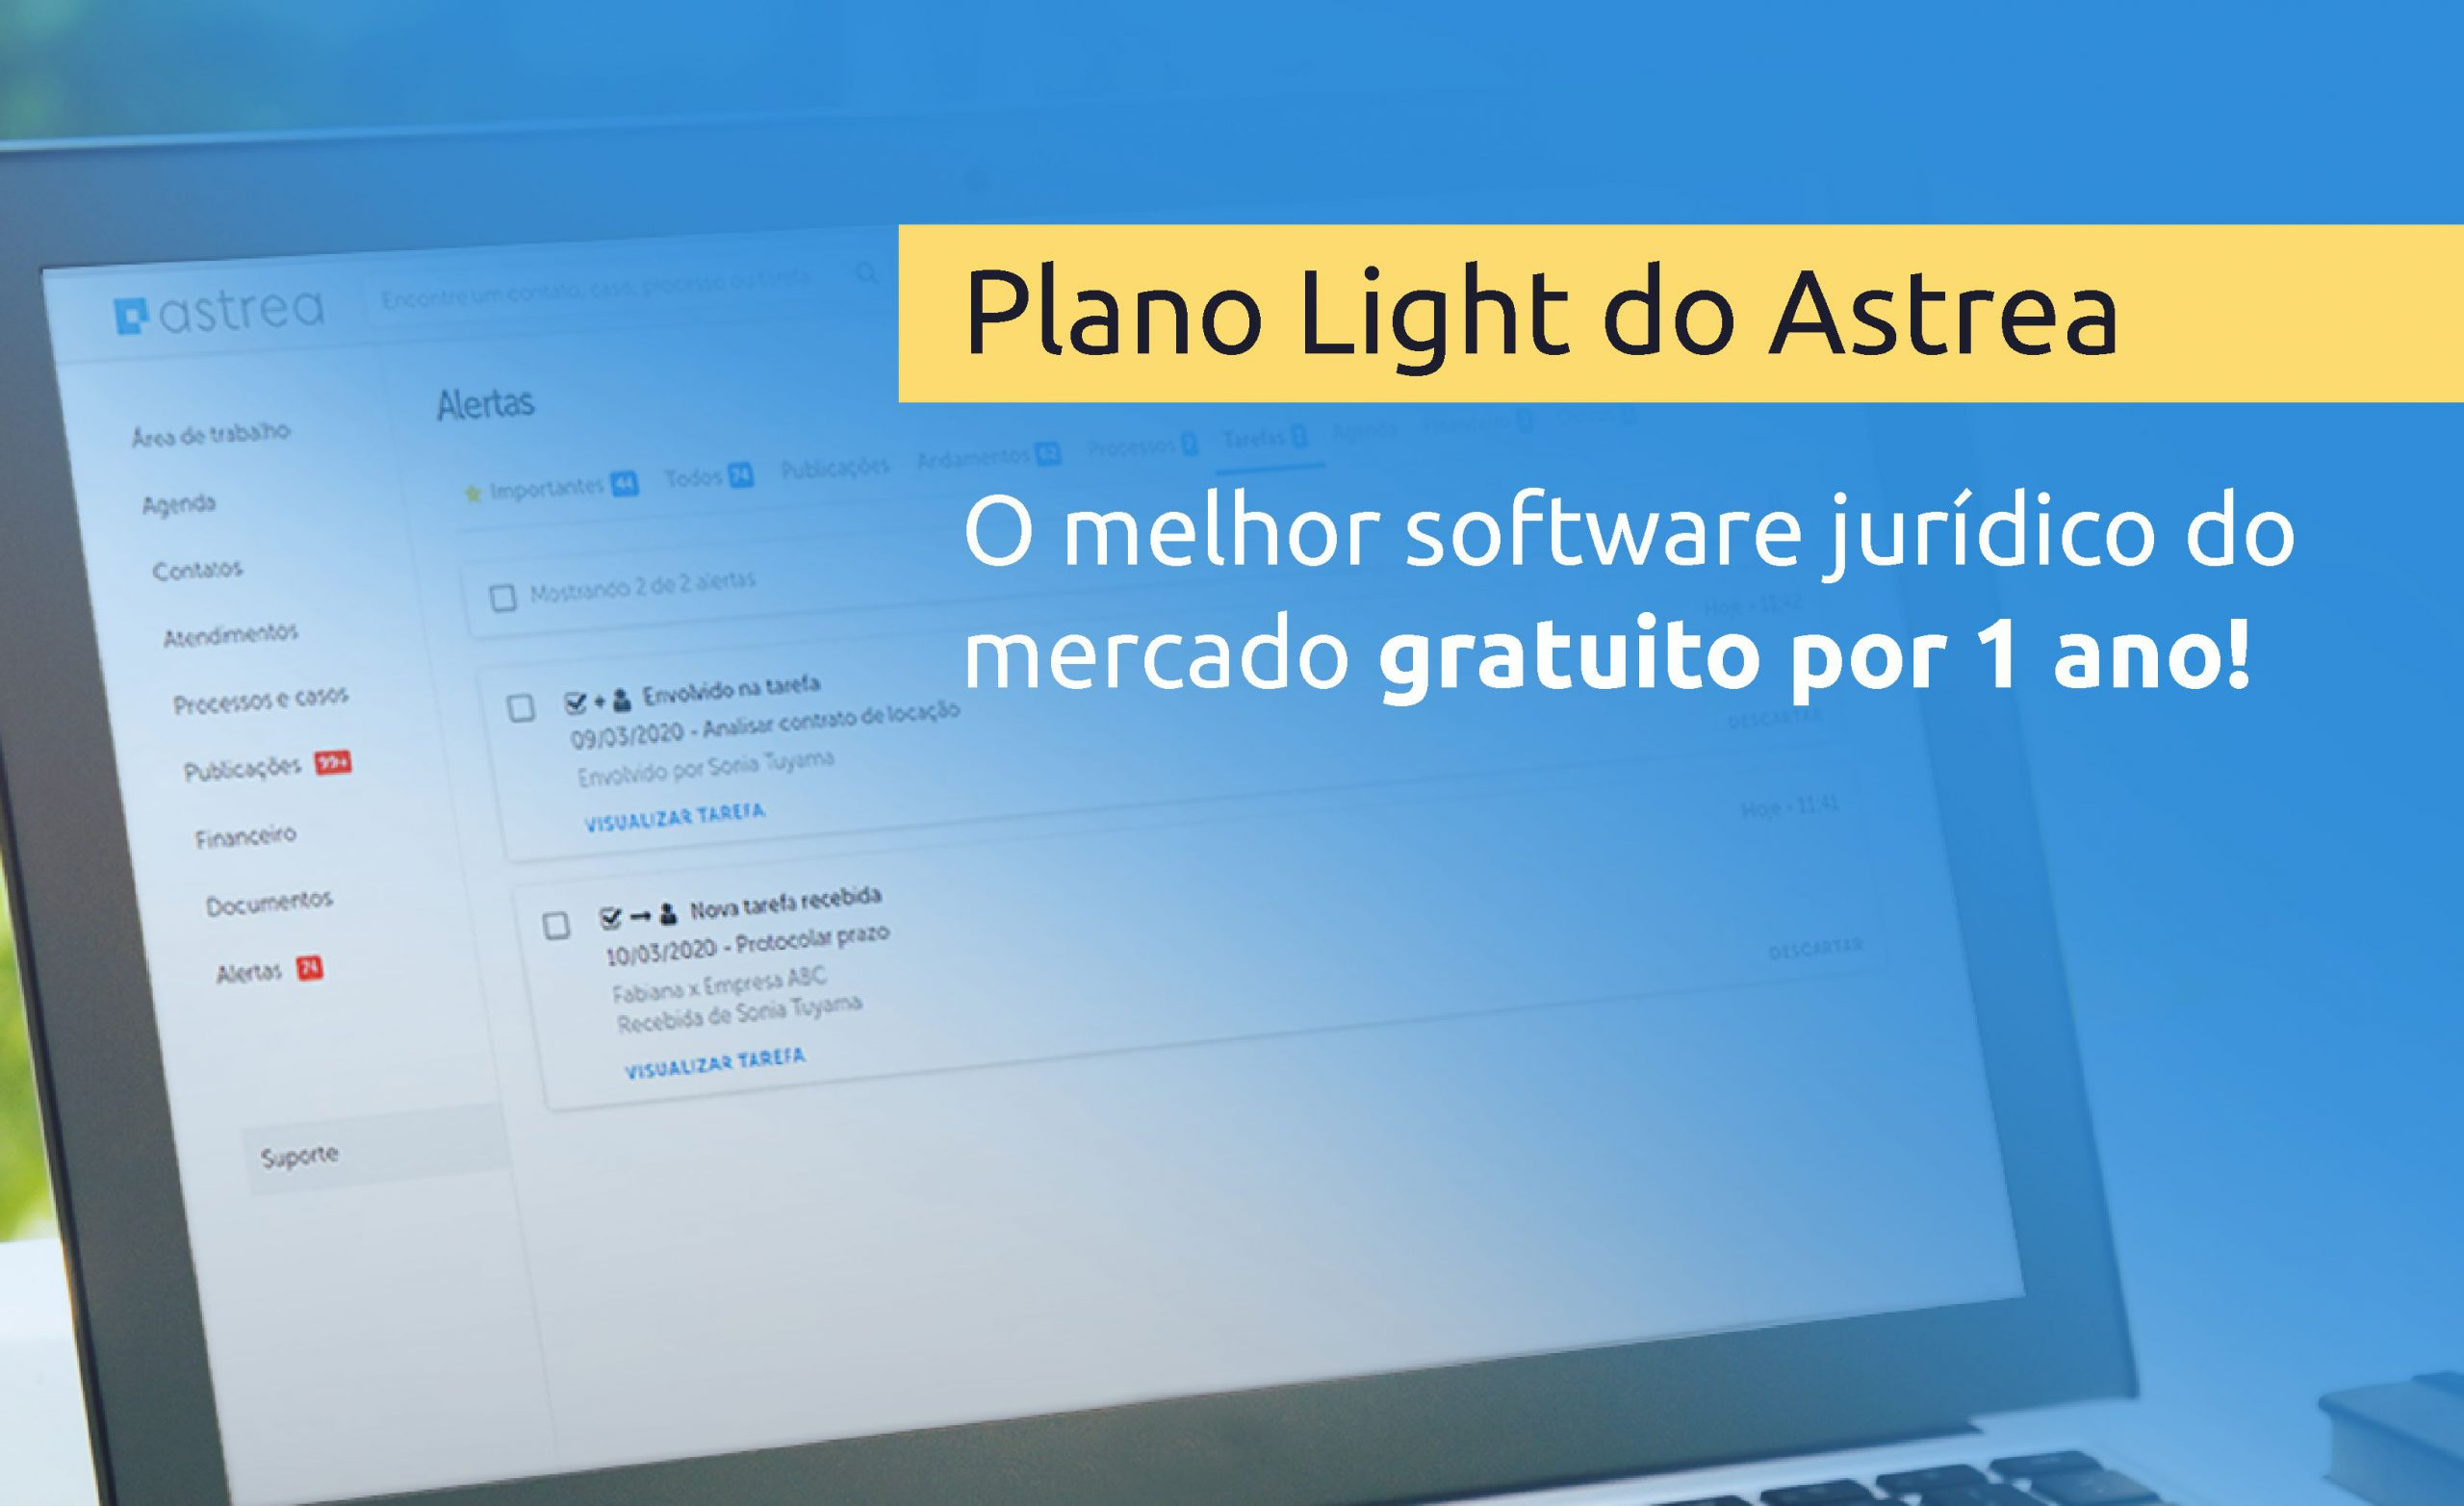 Software Juridico Astrea